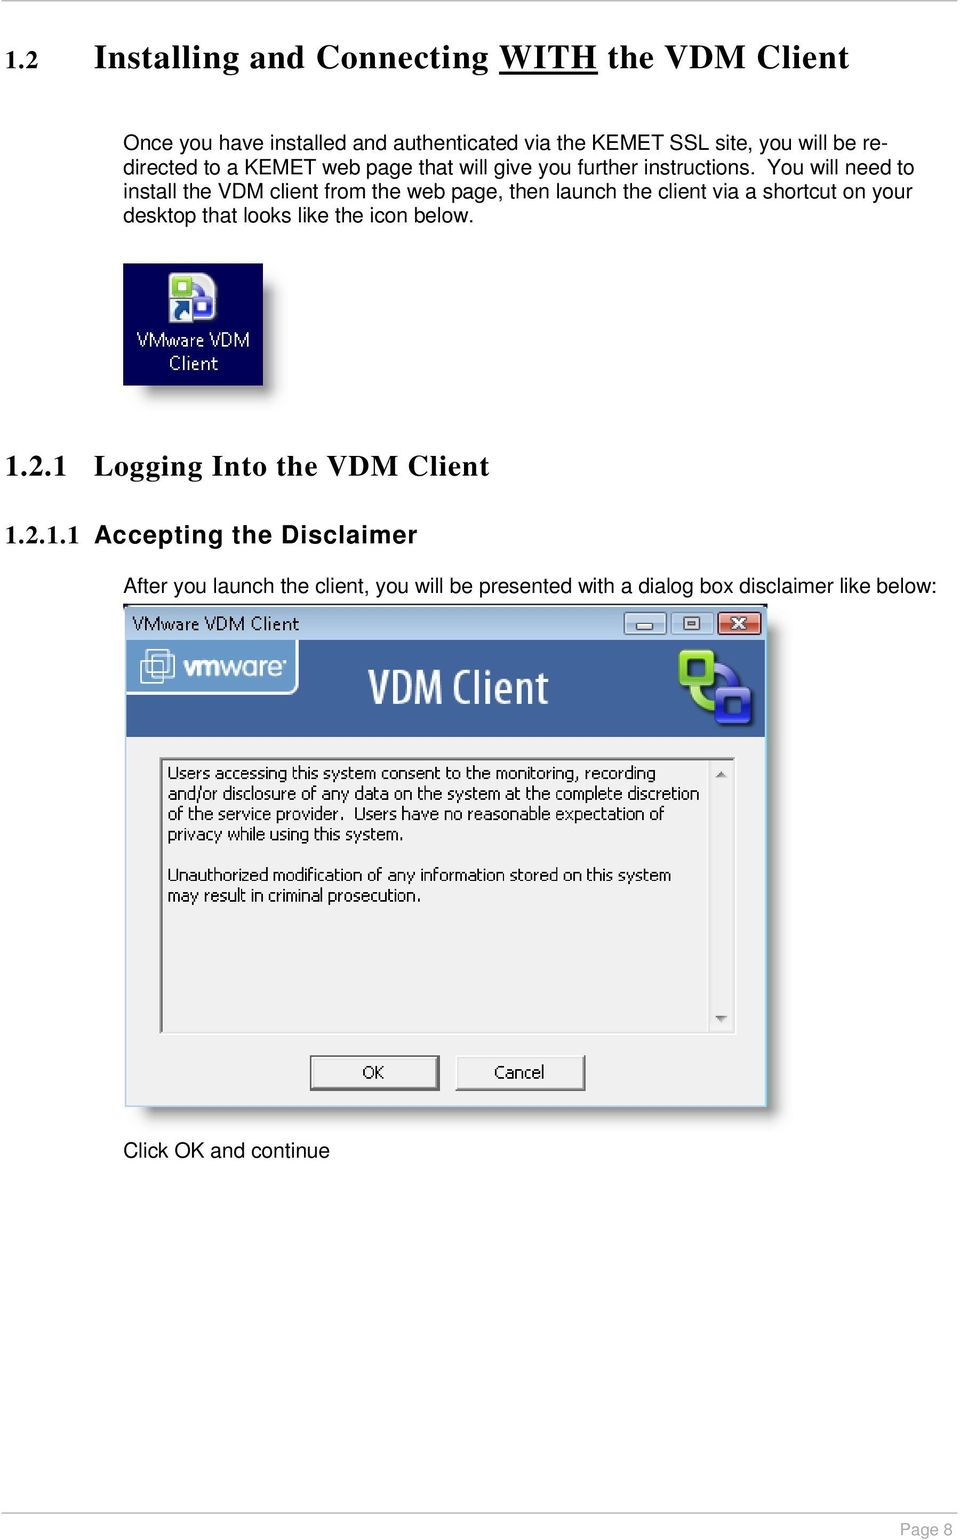 You will need to install the VDM client from the web page, then launch the client via a shortcut on your desktop that looks like the